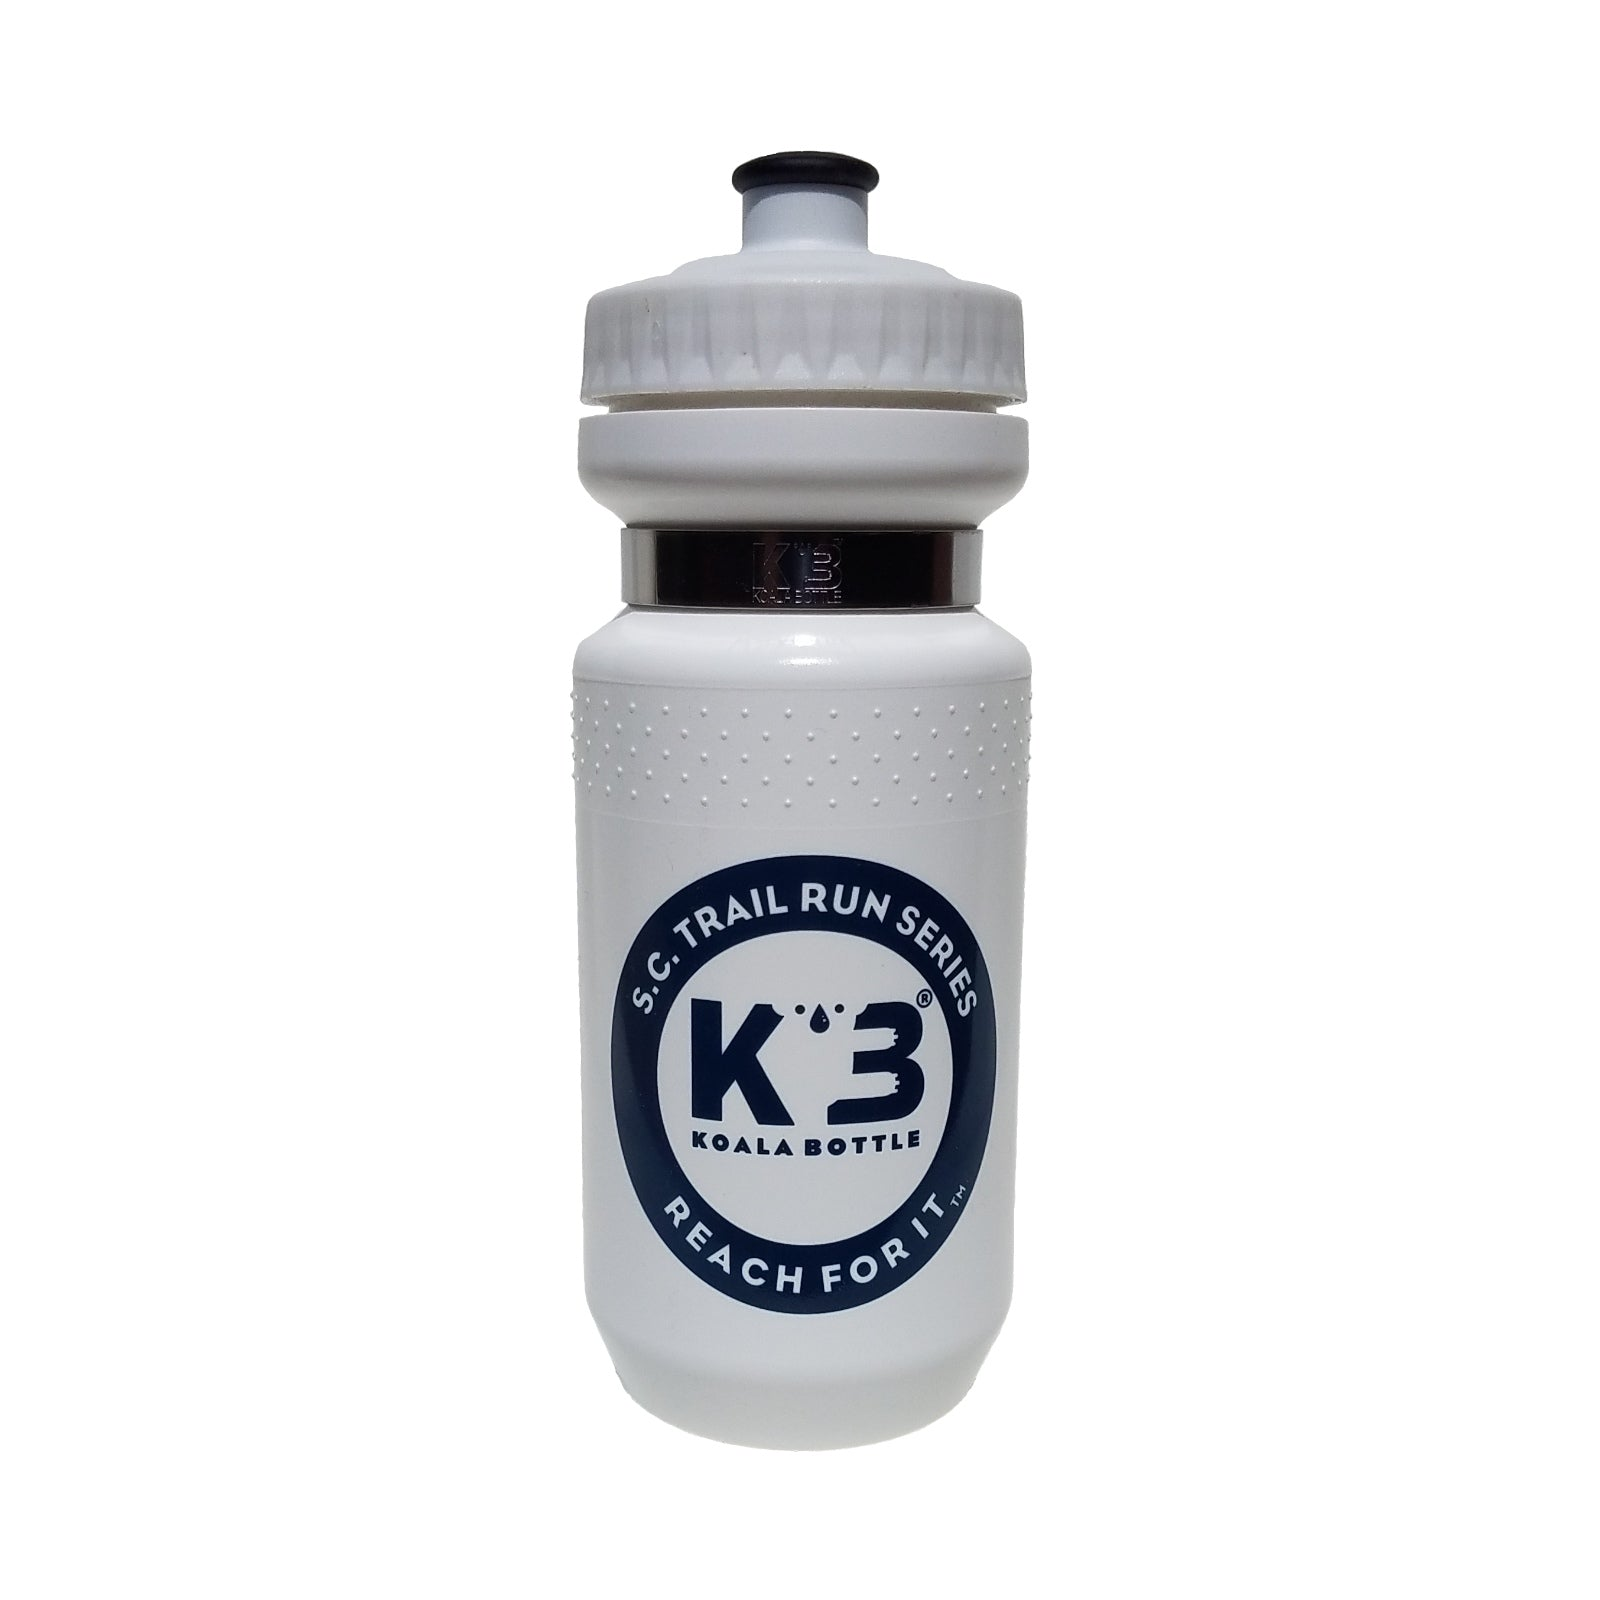 REACH FOR IT - TRAIL RUN SERIES BOTTLE